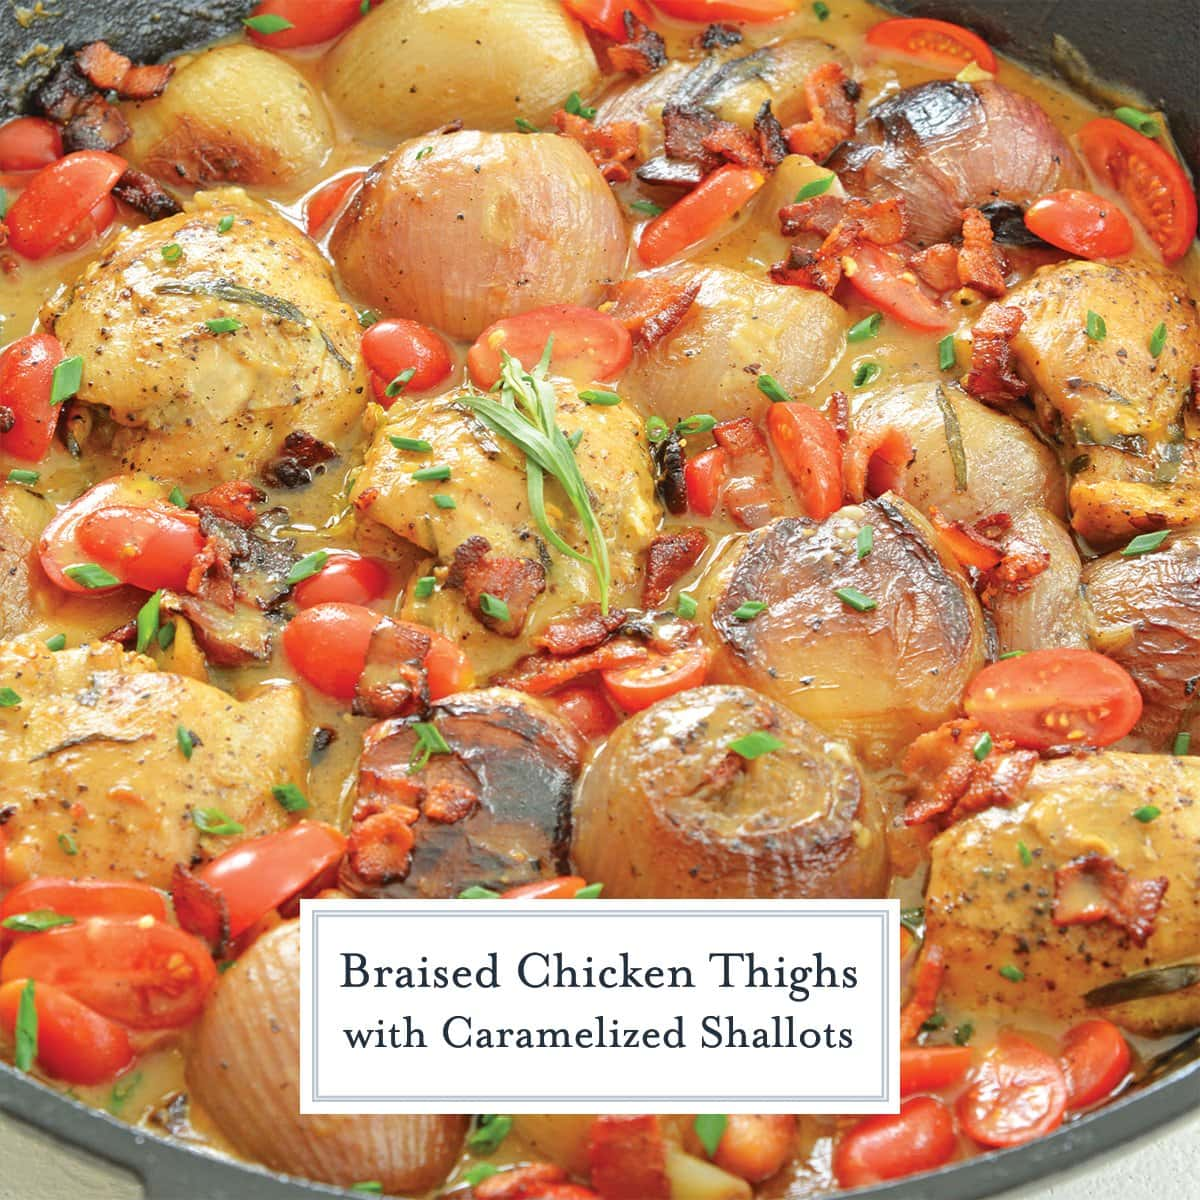 chicken thighs and shallots in a cast iron skillet with tarragon